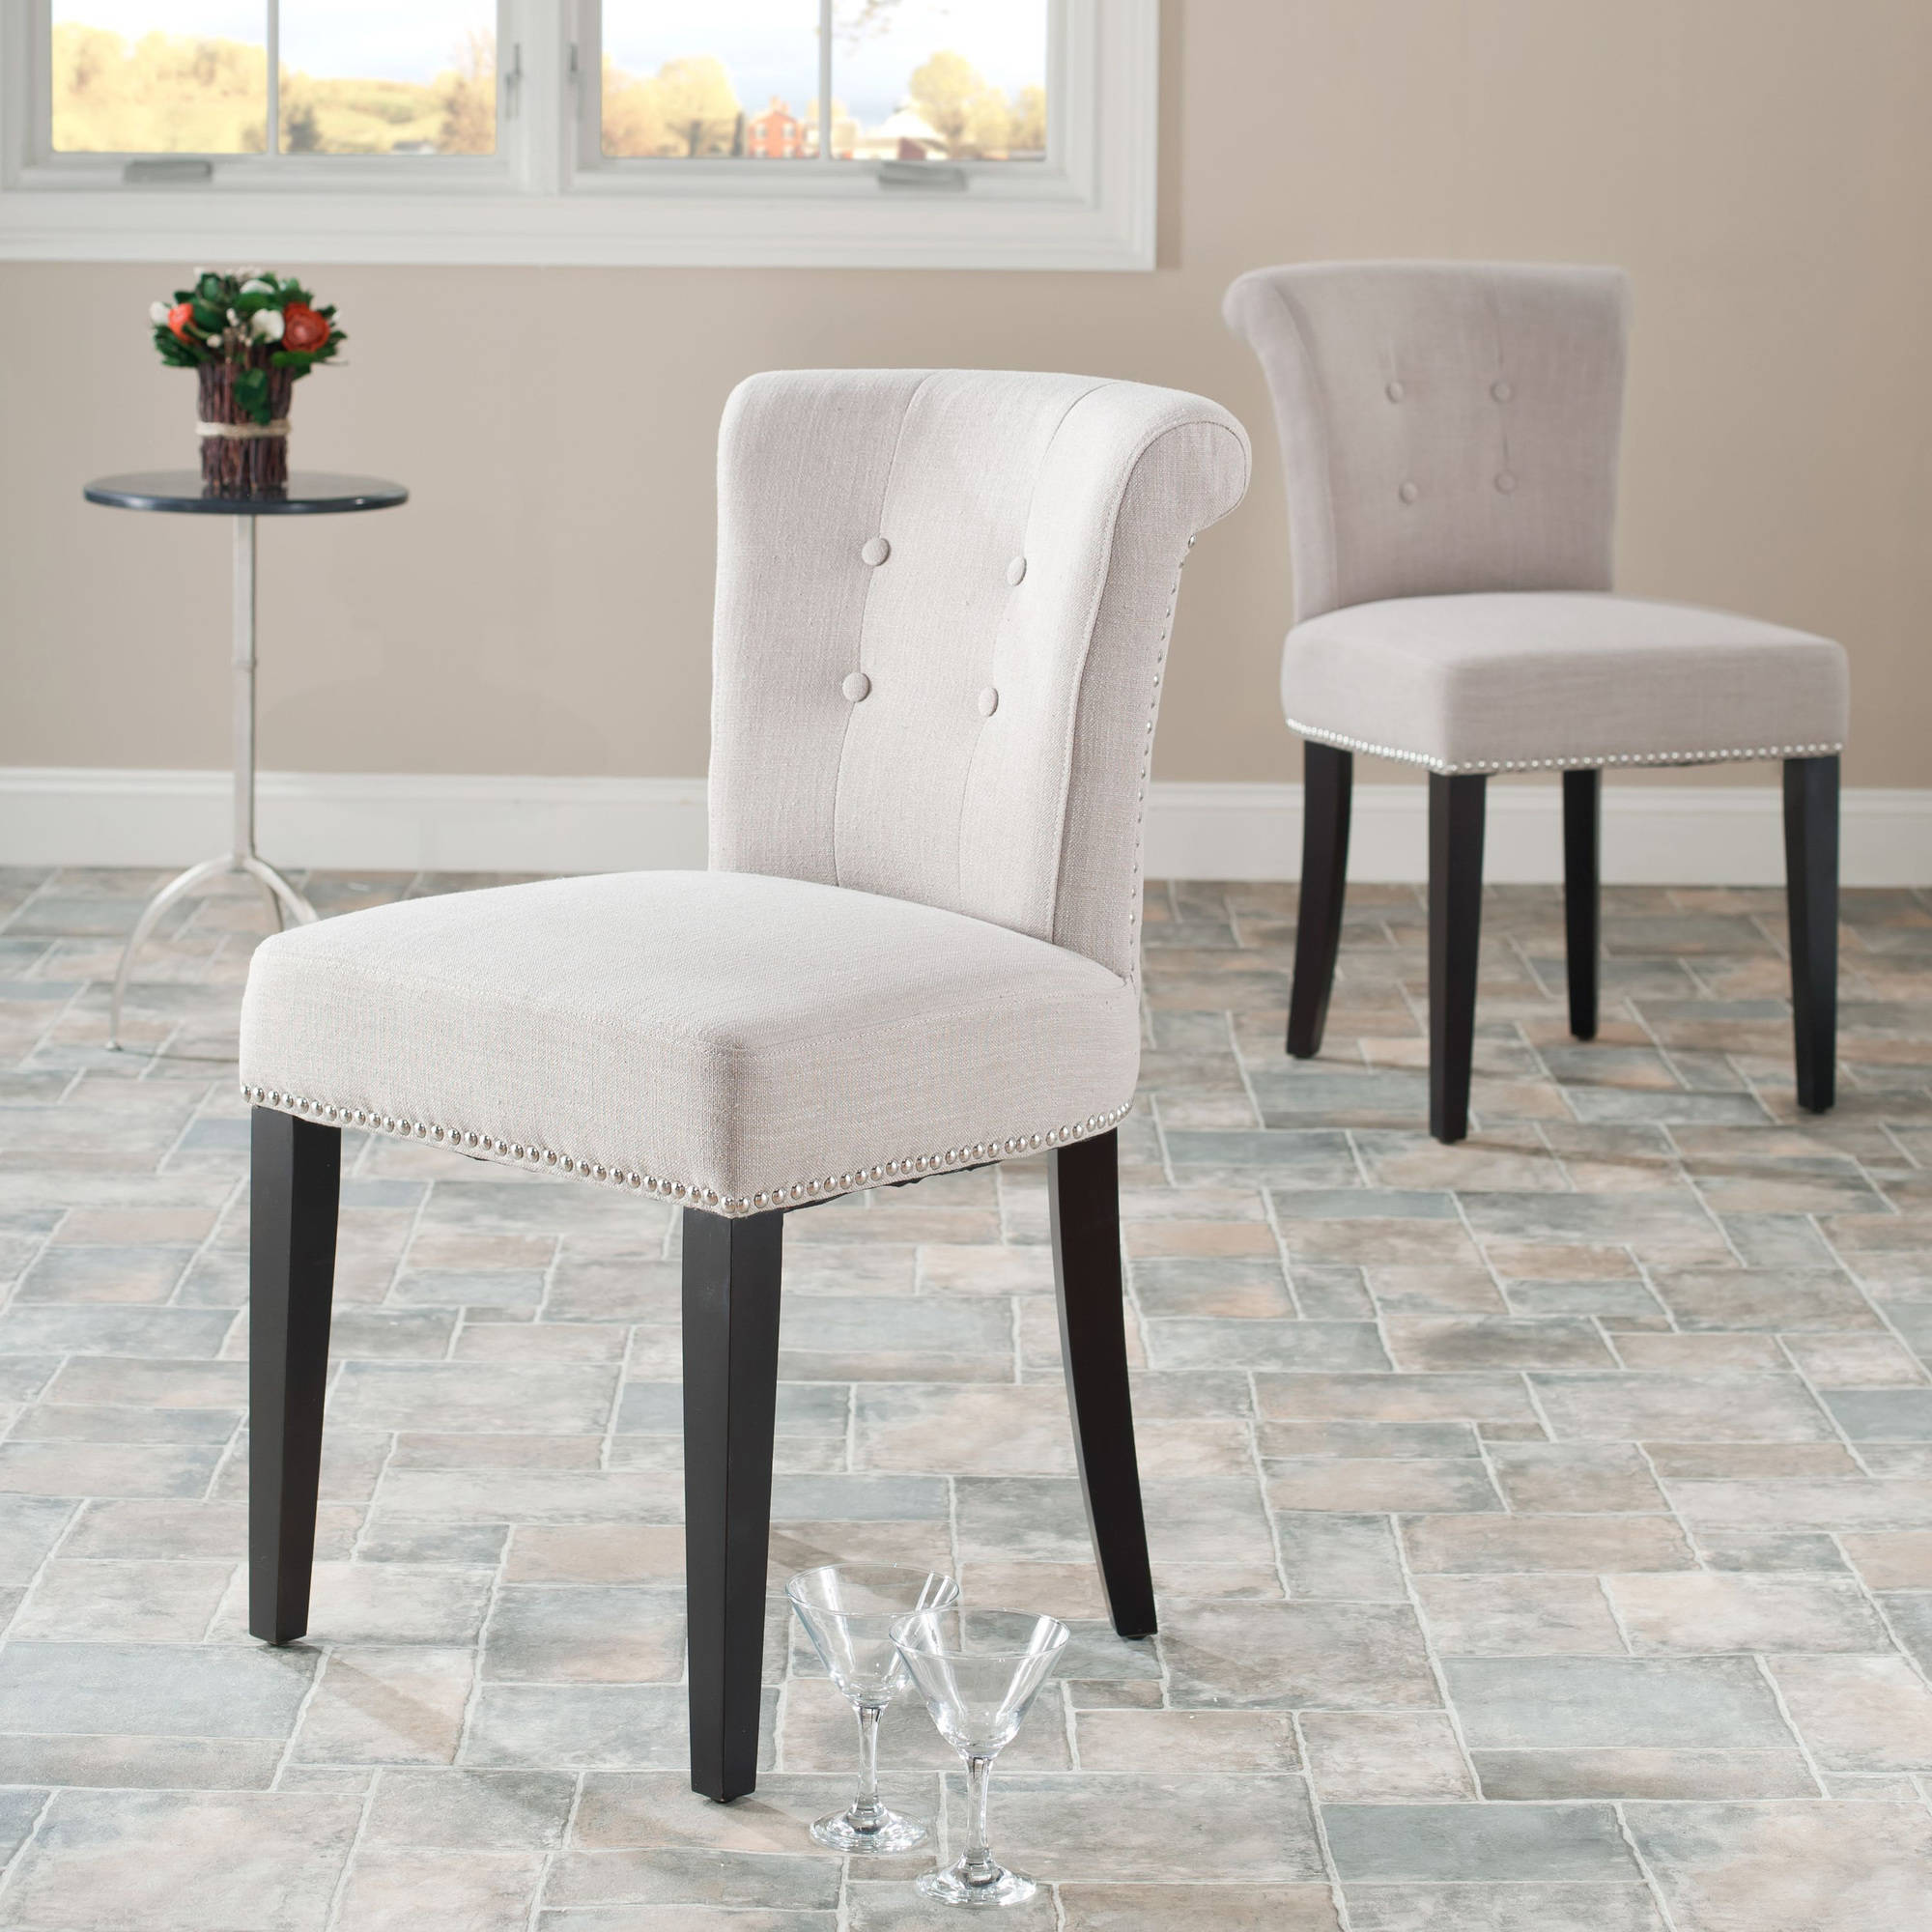 Safavieh Sinclaire Side Chairs with Nailheads, Set of 2